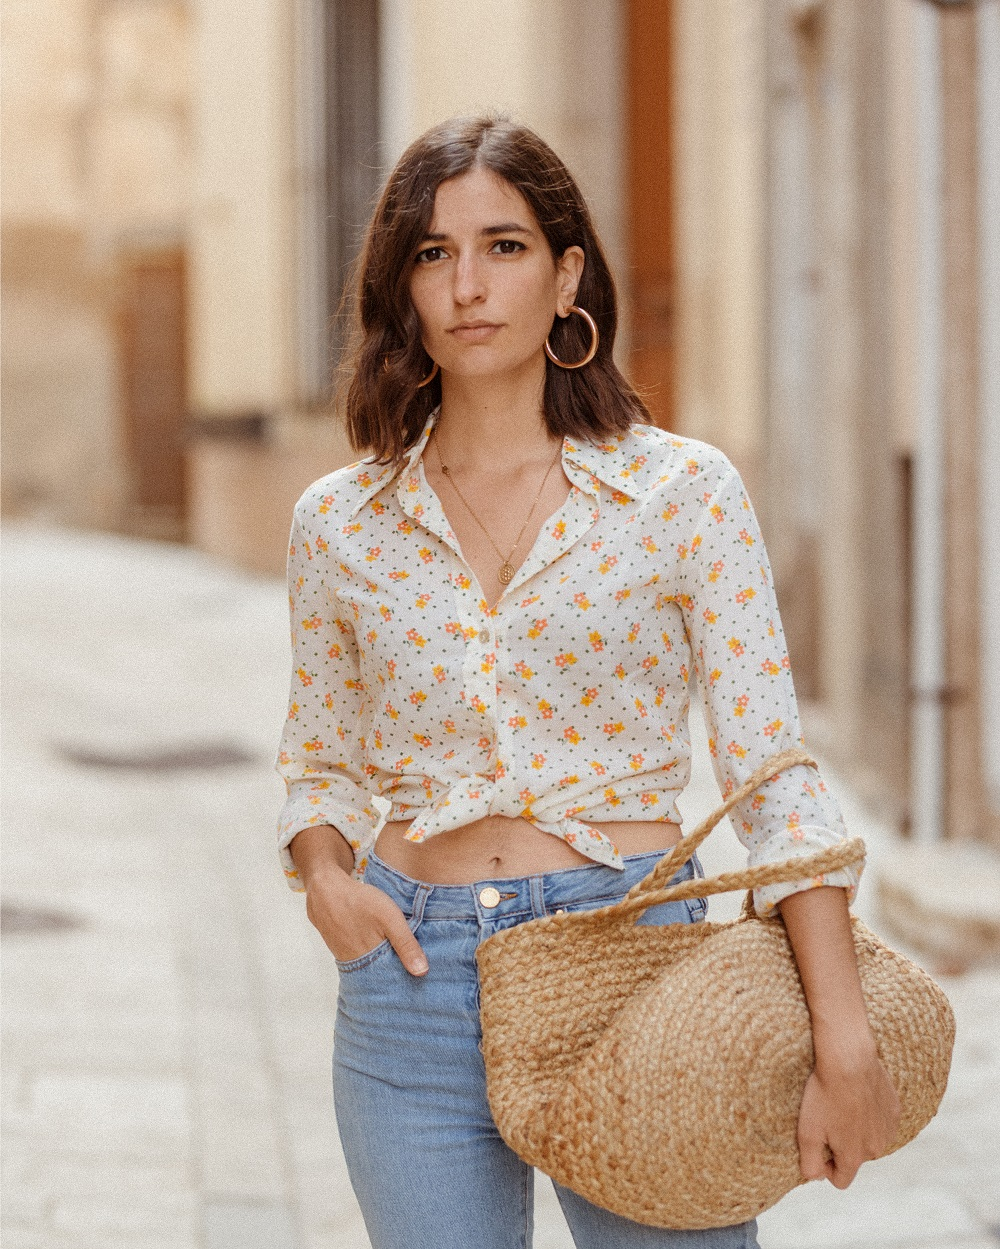 A vintage shirt and a pair of espadrilles